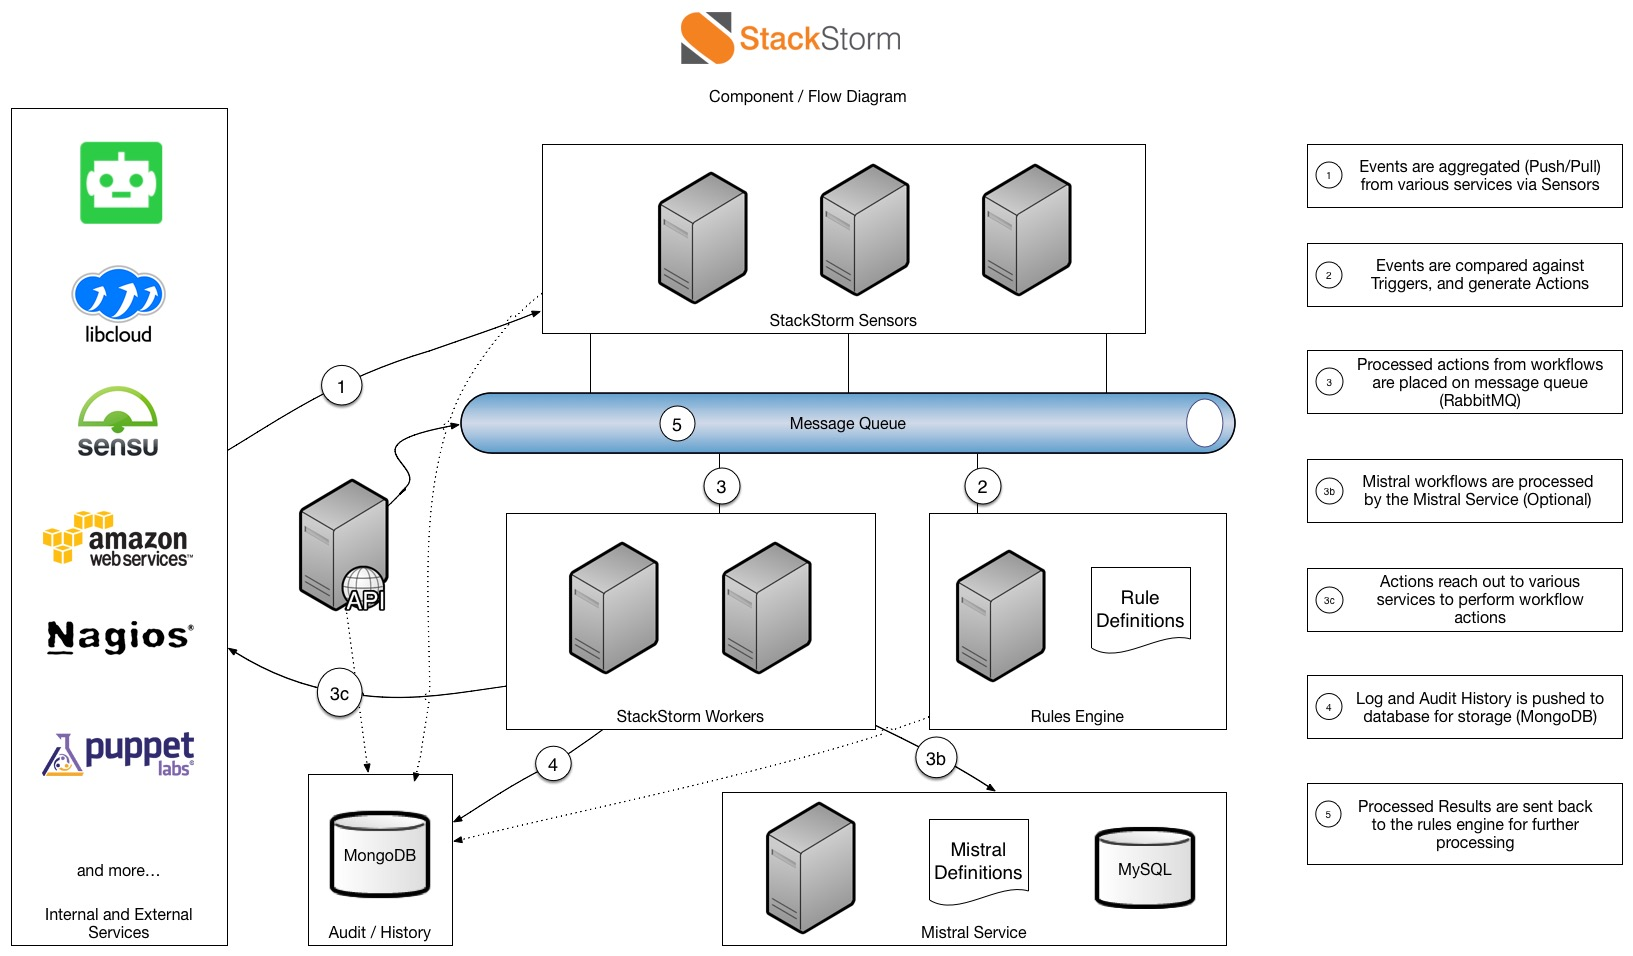 stackstorm component diagram